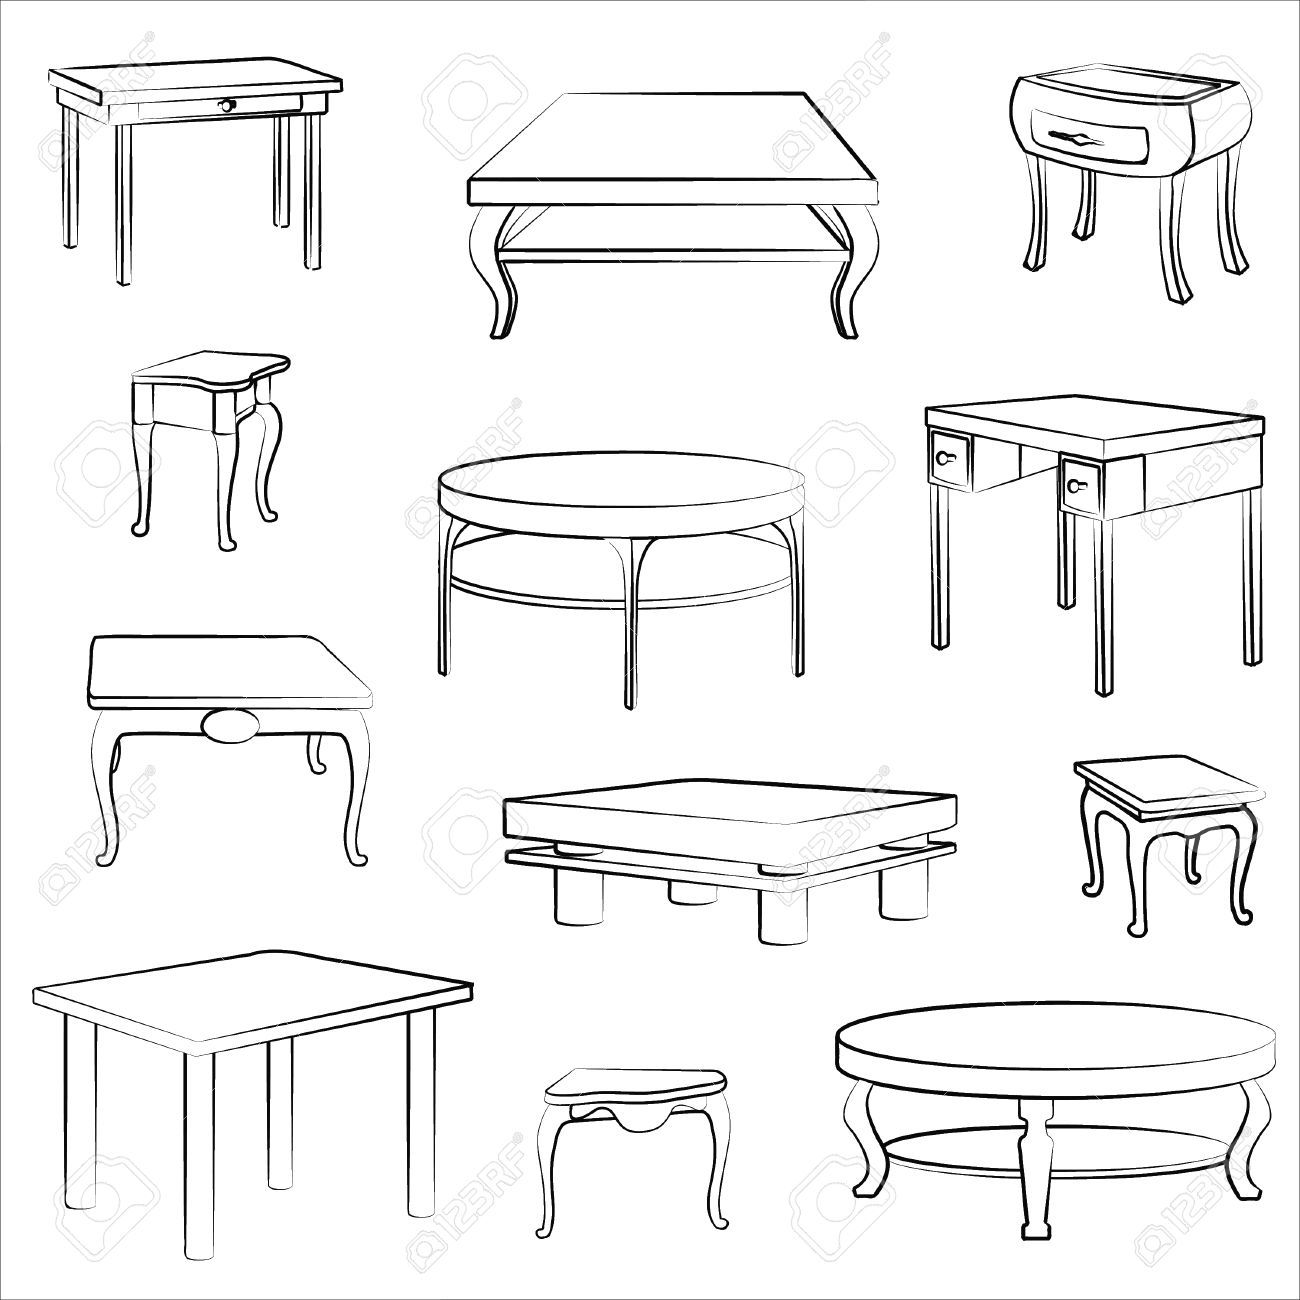 Stock Vector In 2020 Interior Design Sketches Drawing Furniture